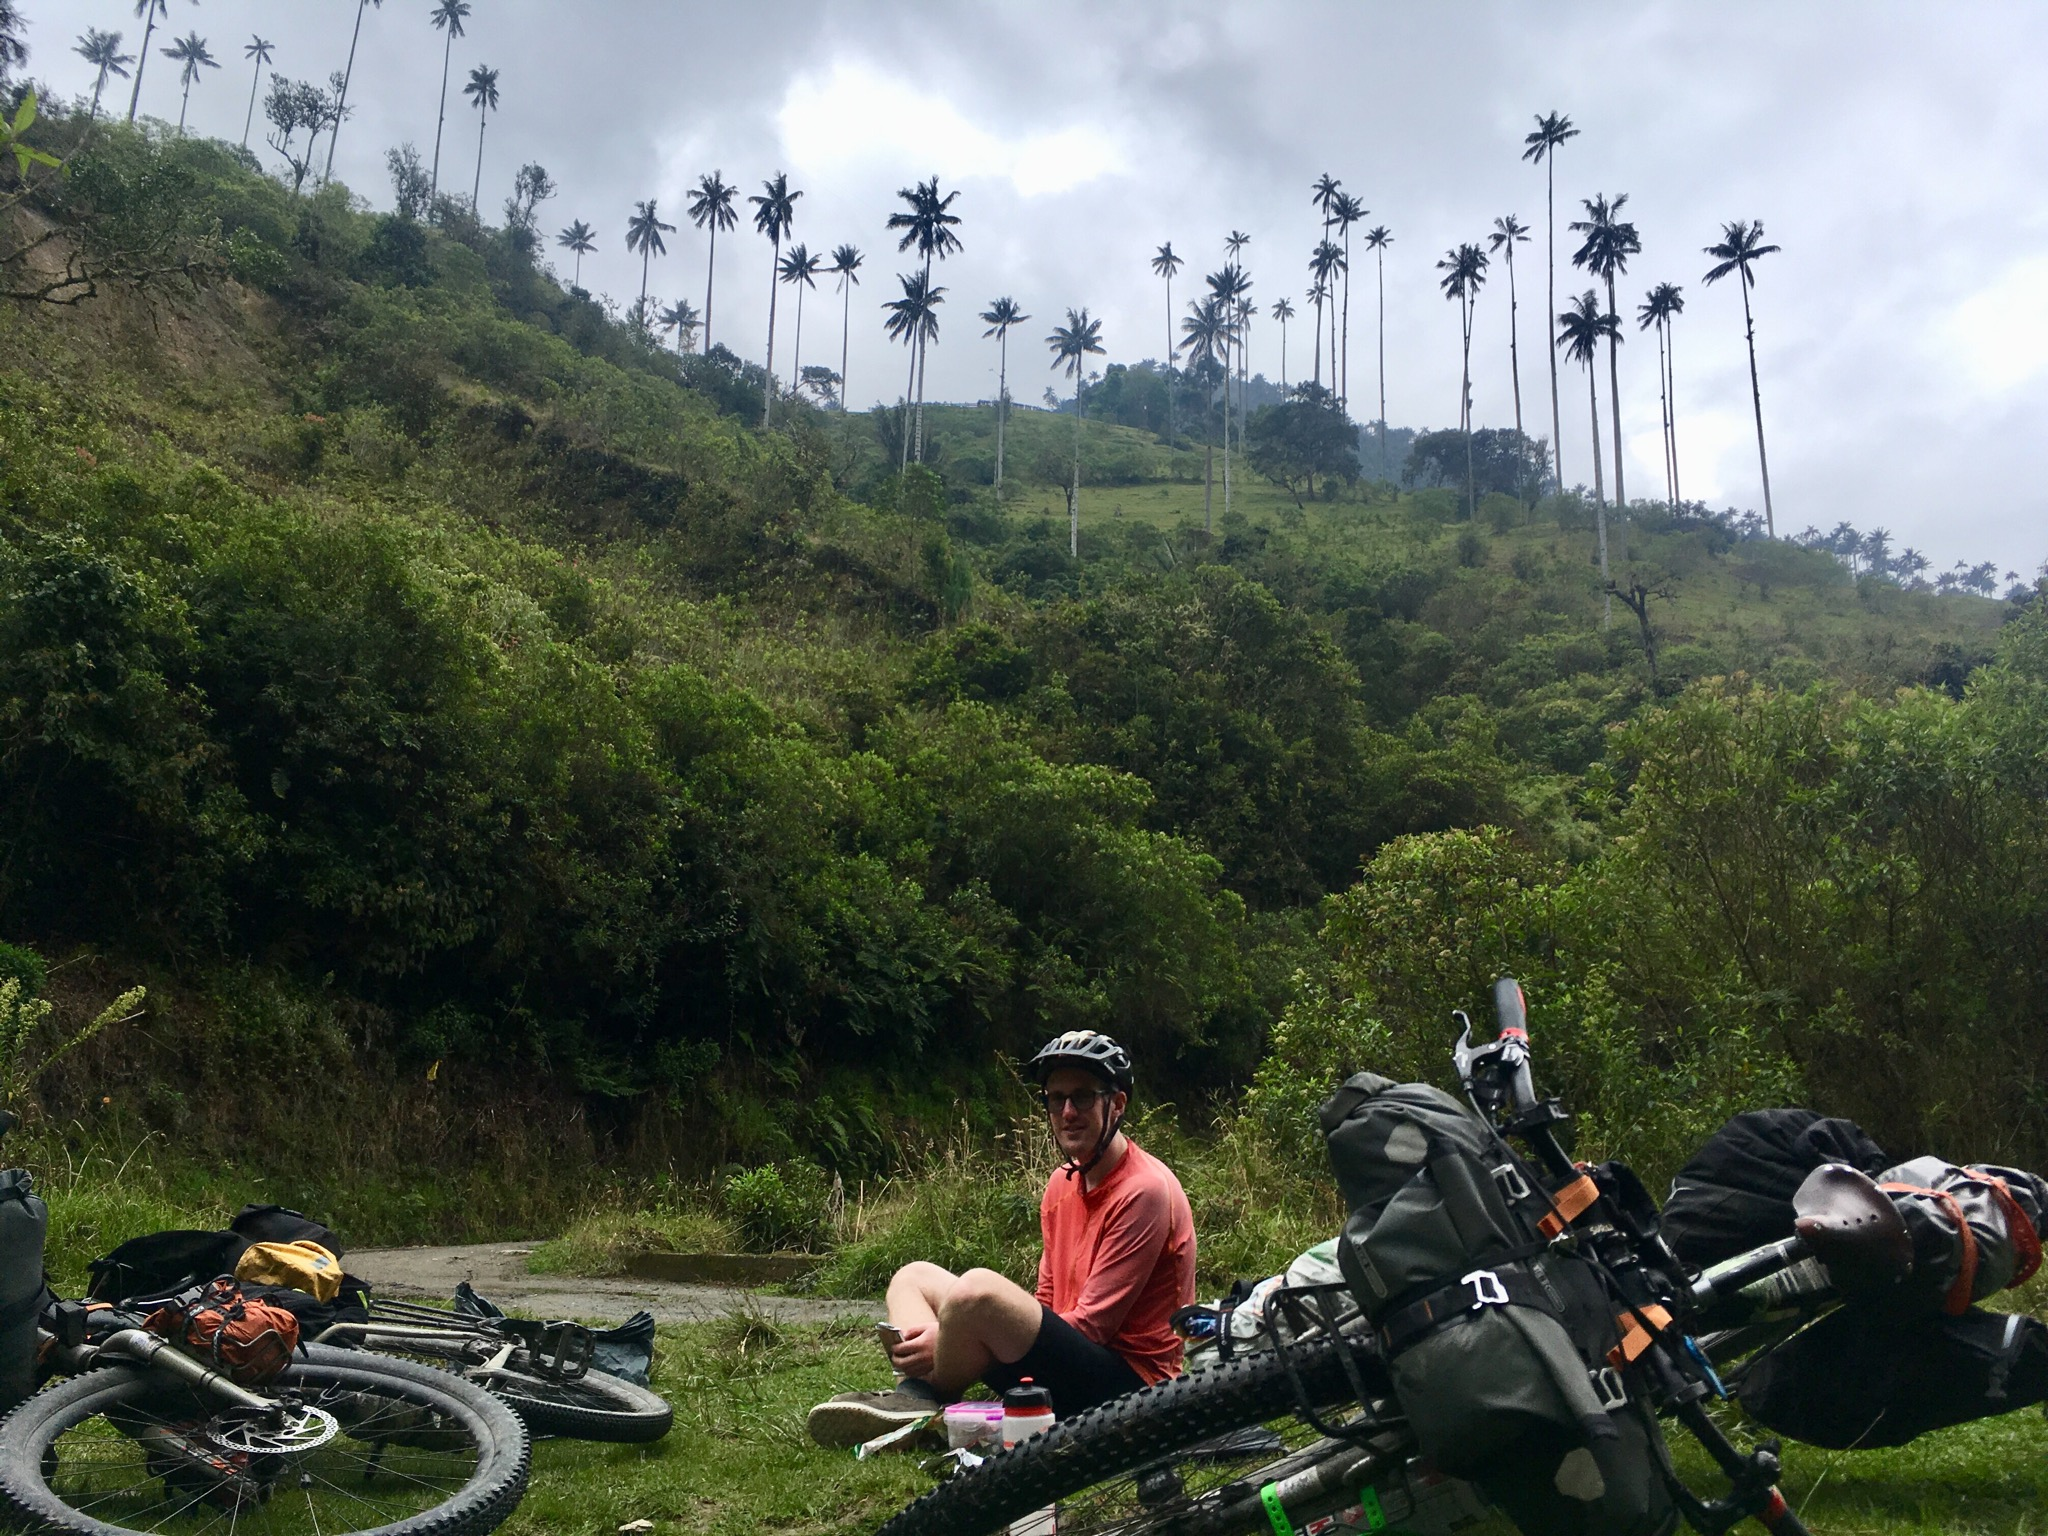 ben having lunch with bikes in foreground, tall palm trees on mountains behind